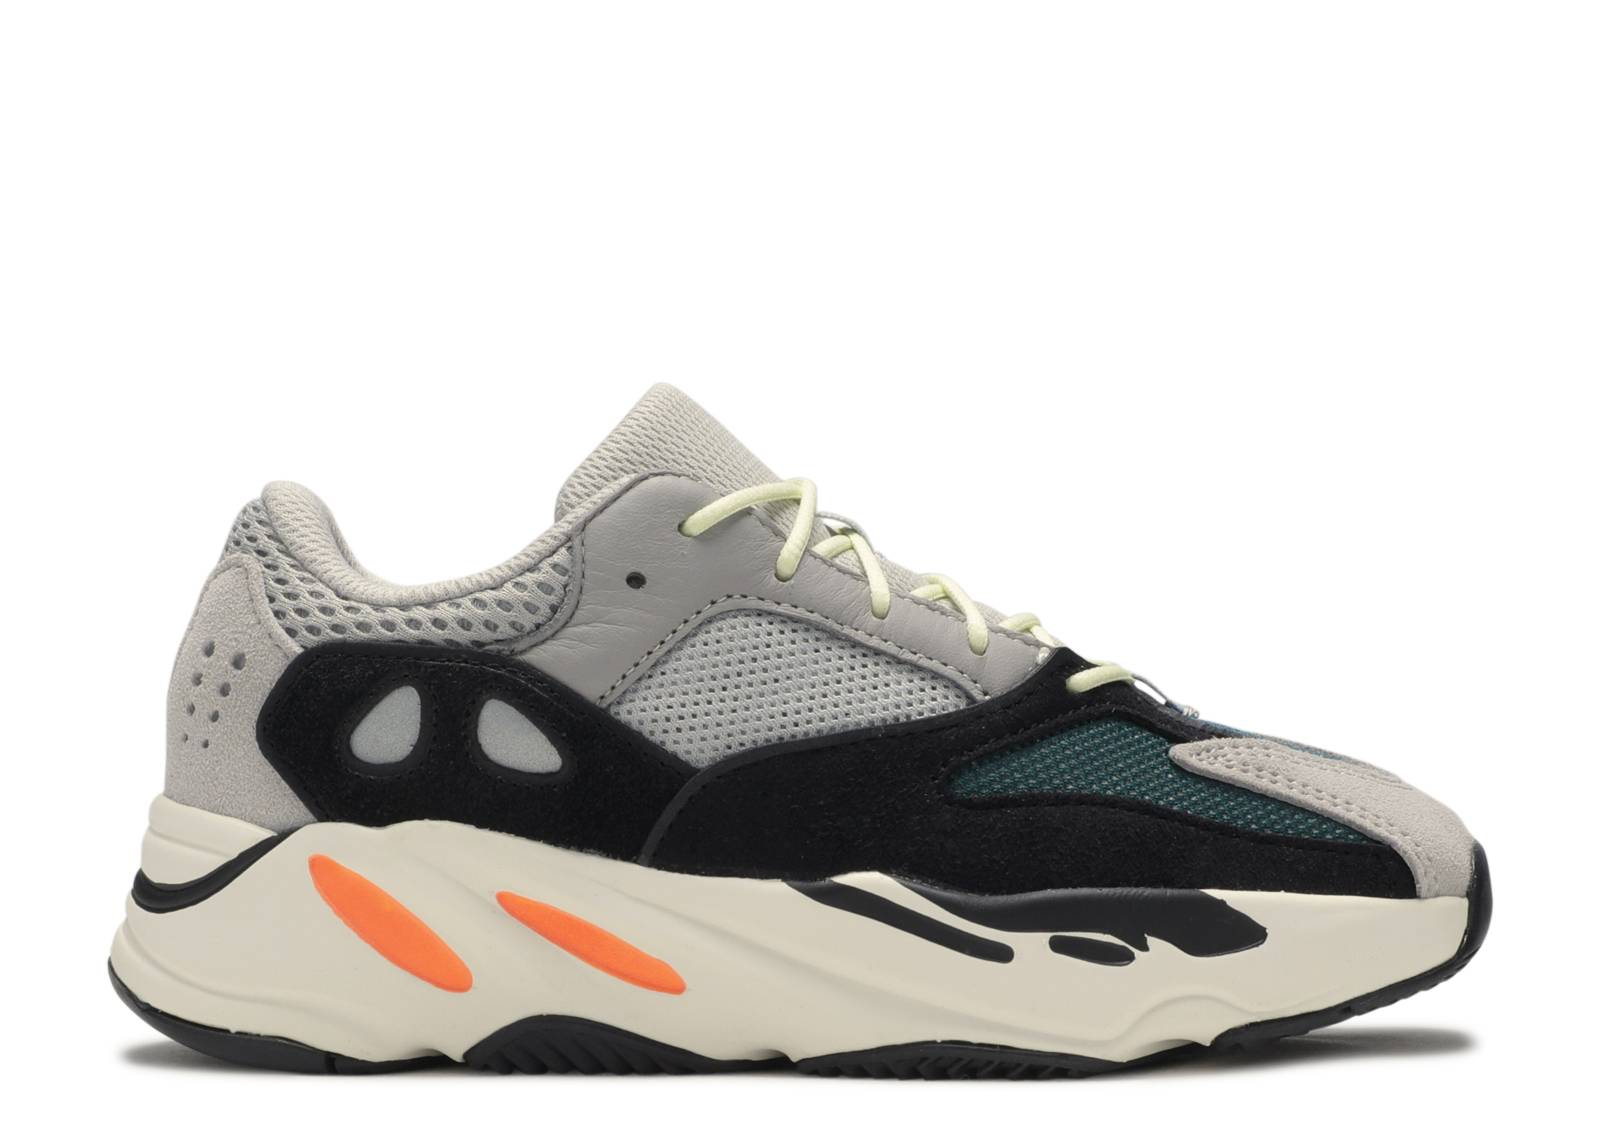 promo code a22ad 6a7f2 Yeezy Boost 700 V2 Kids